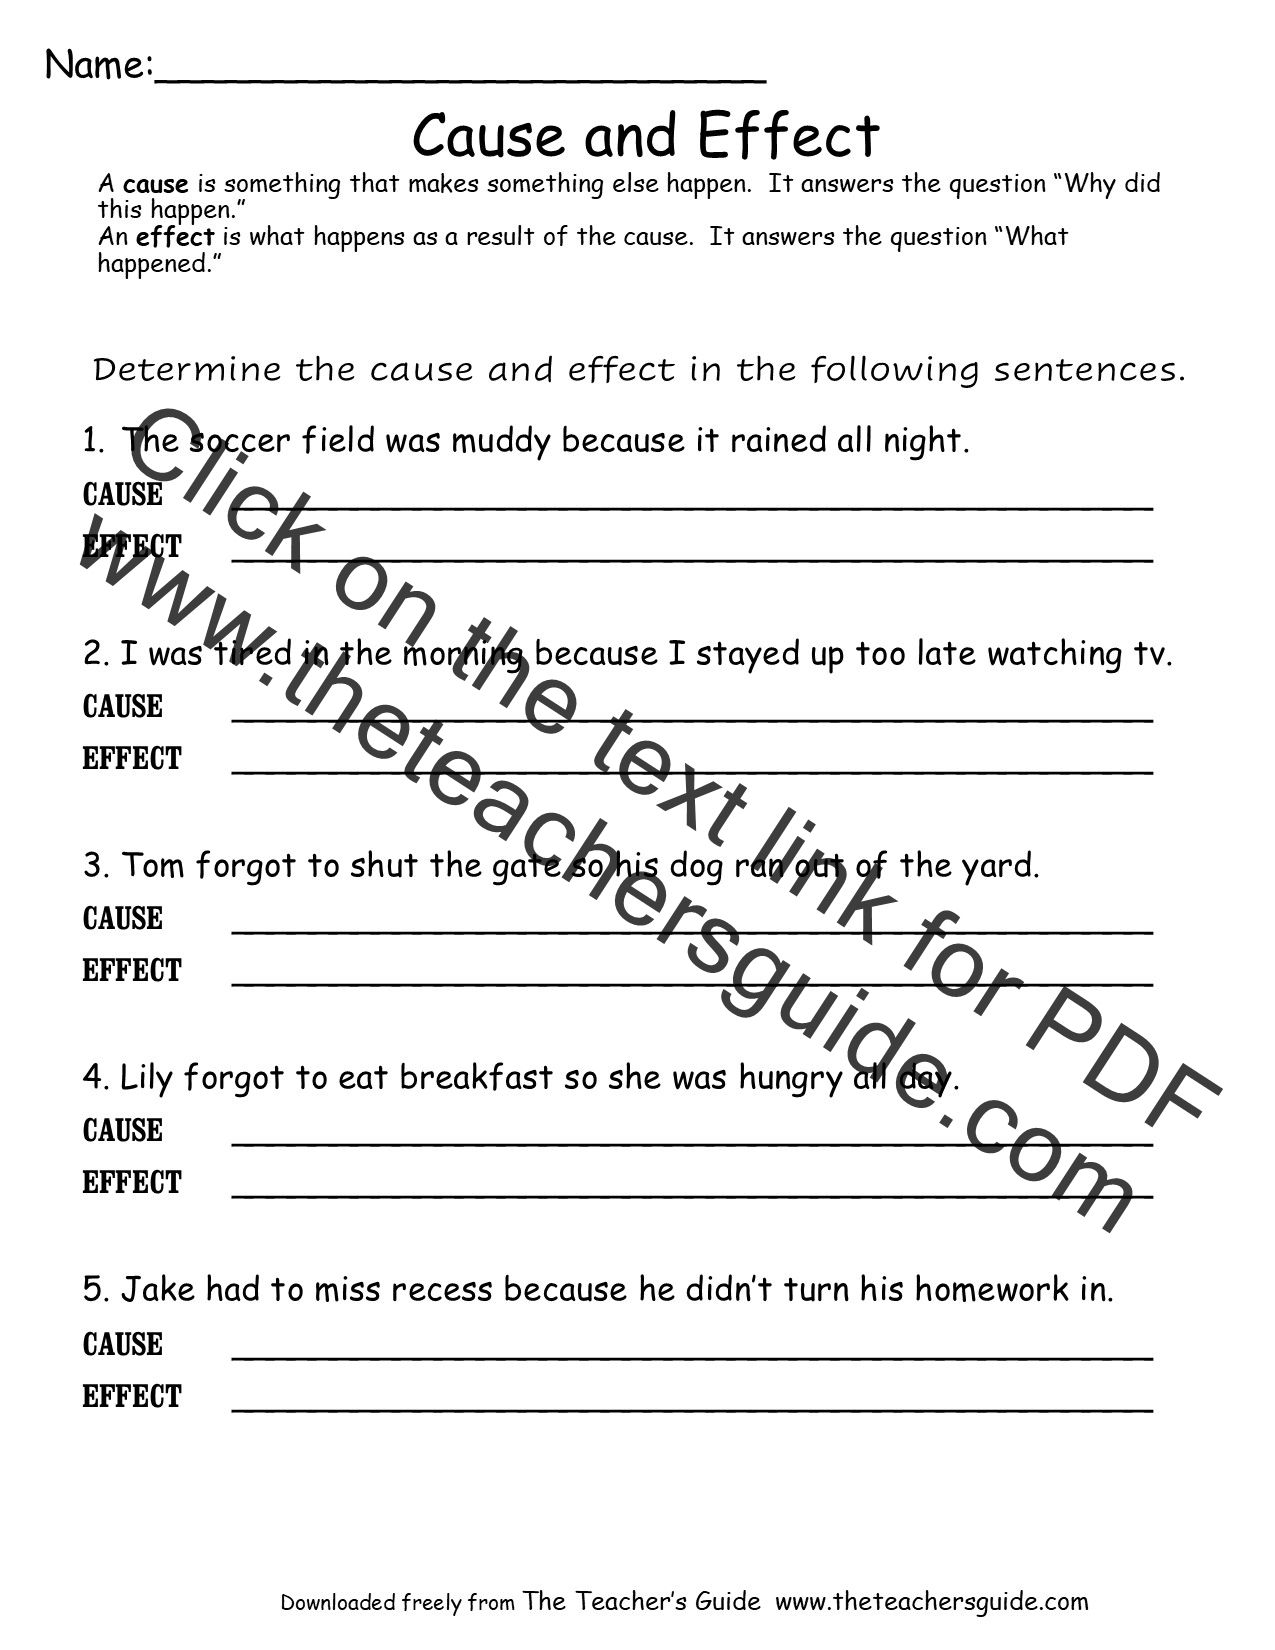 Cause And Effect Worksheets From The Teacher S Guide